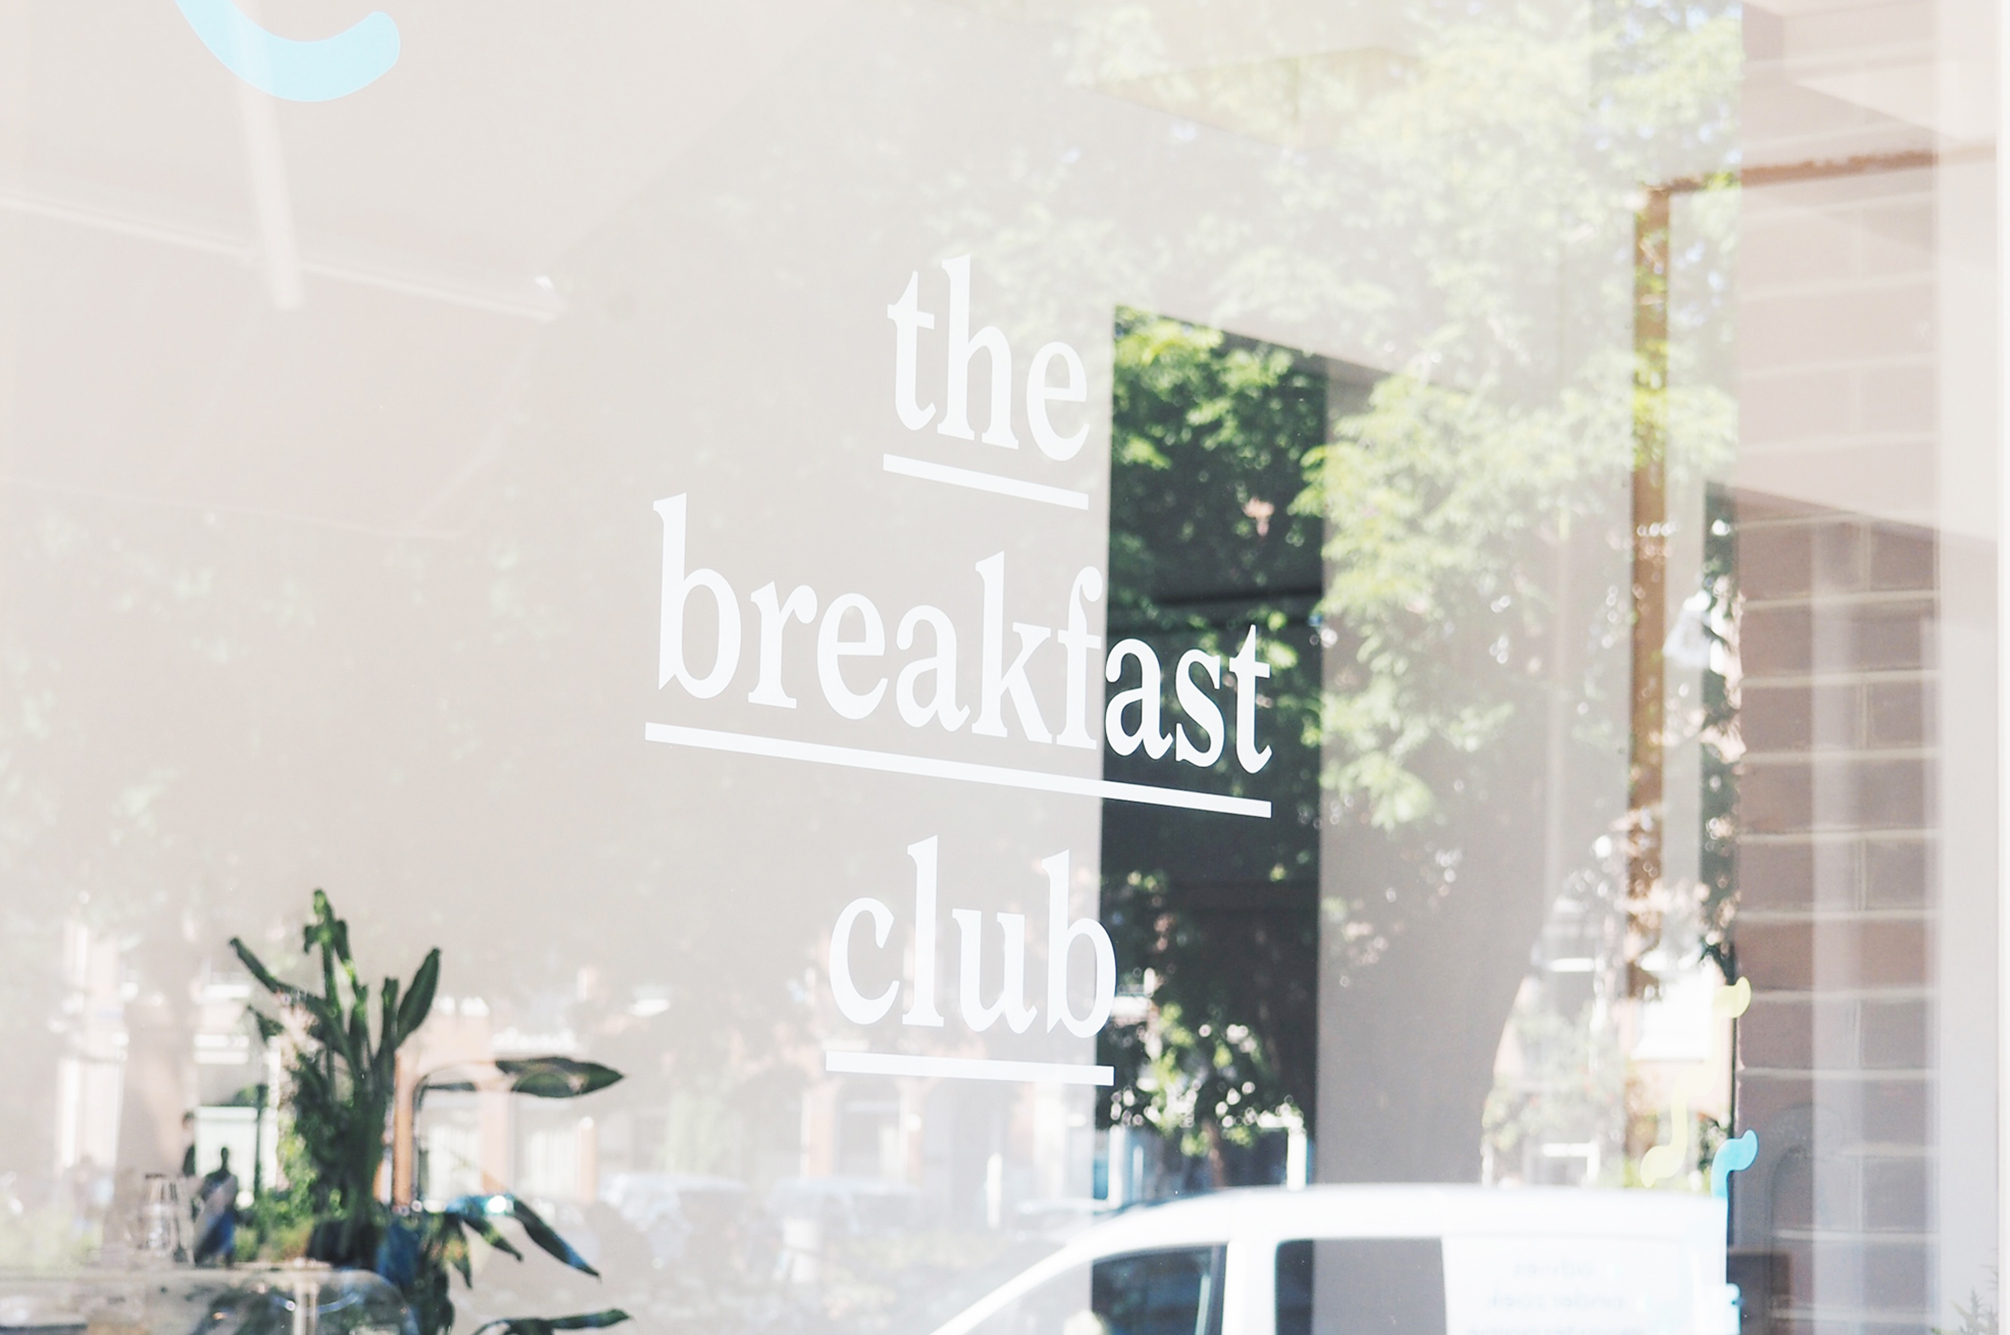 The Breakfast Club - Amsterdam city guide